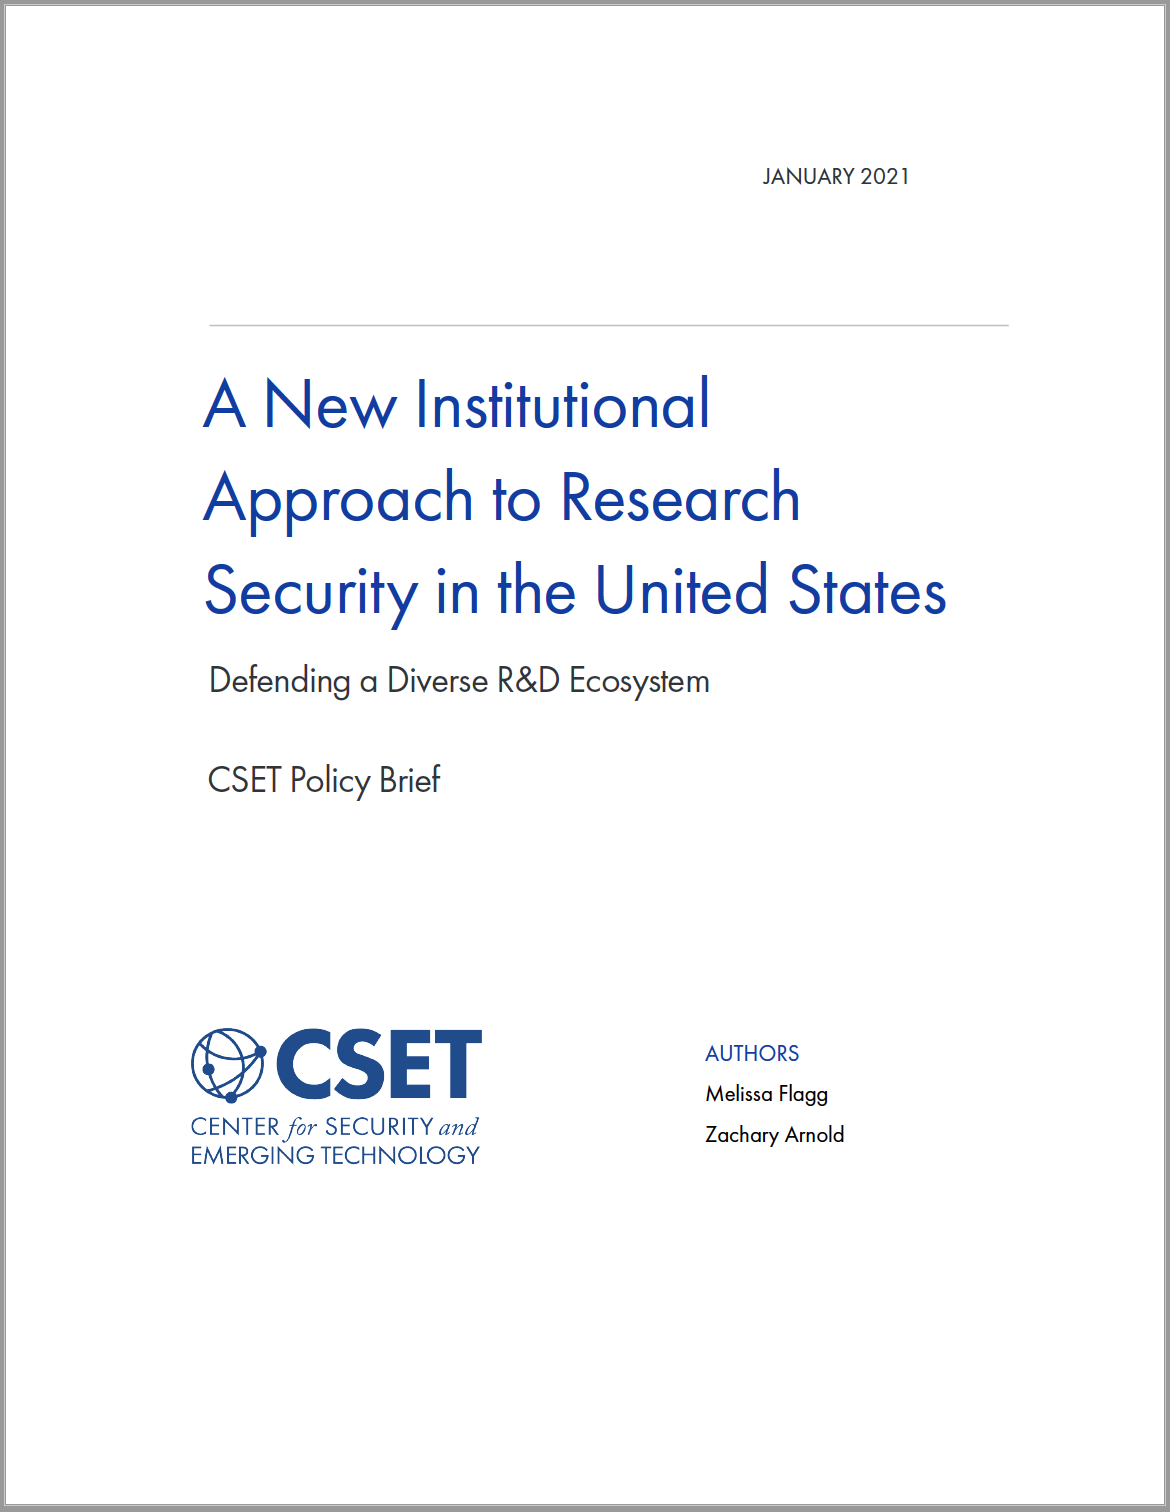 A New Institutional Approach to Research Security in the United States